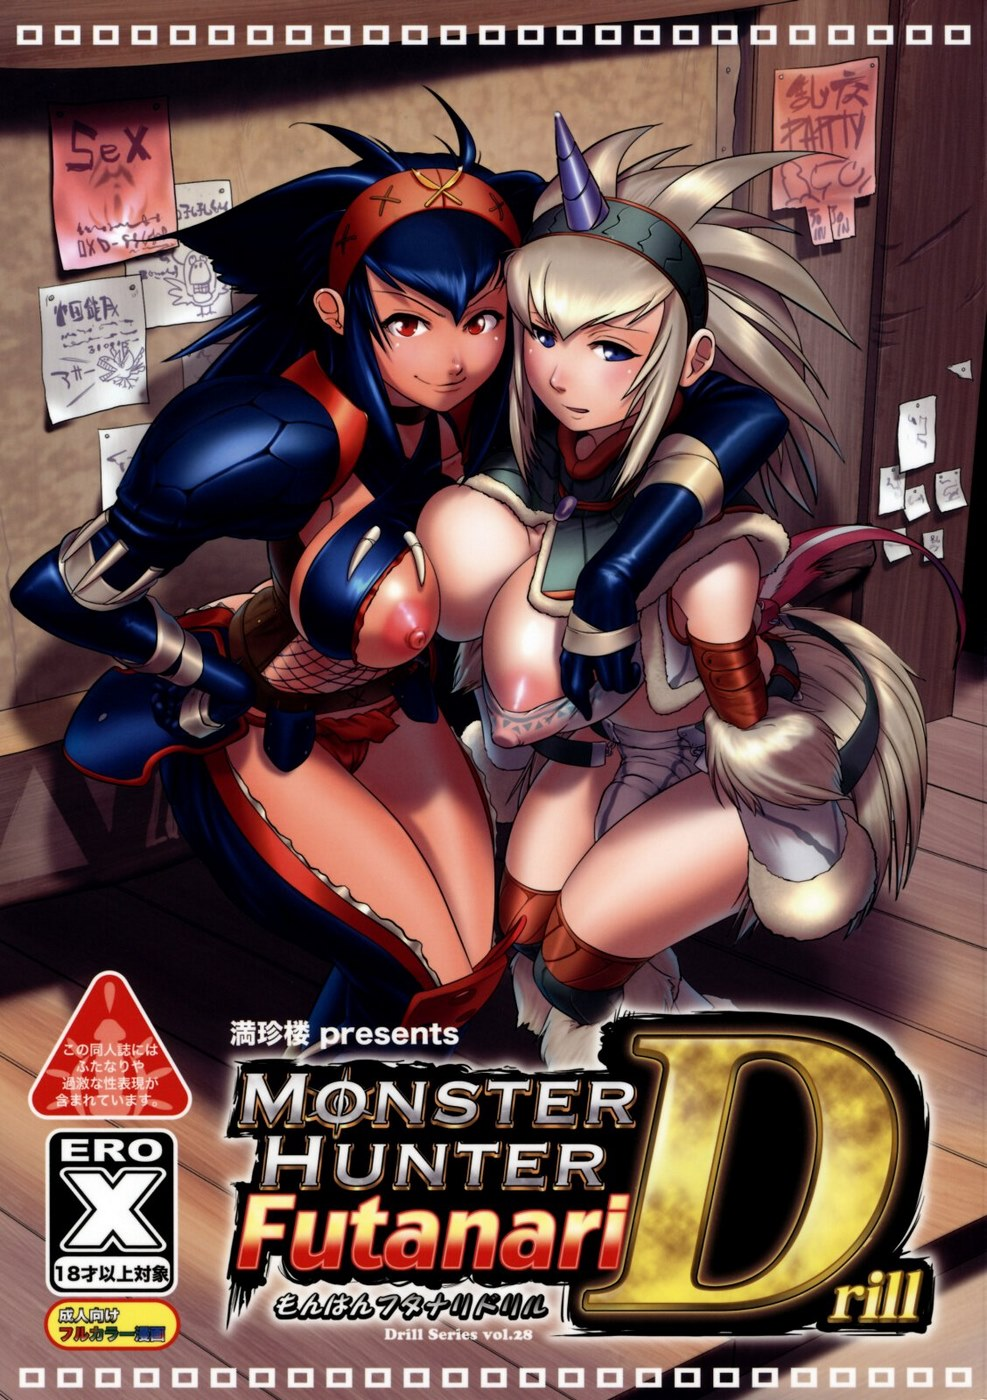 Monster Hunter- Futanari Drill 1- Hentai porn comics 8 muses